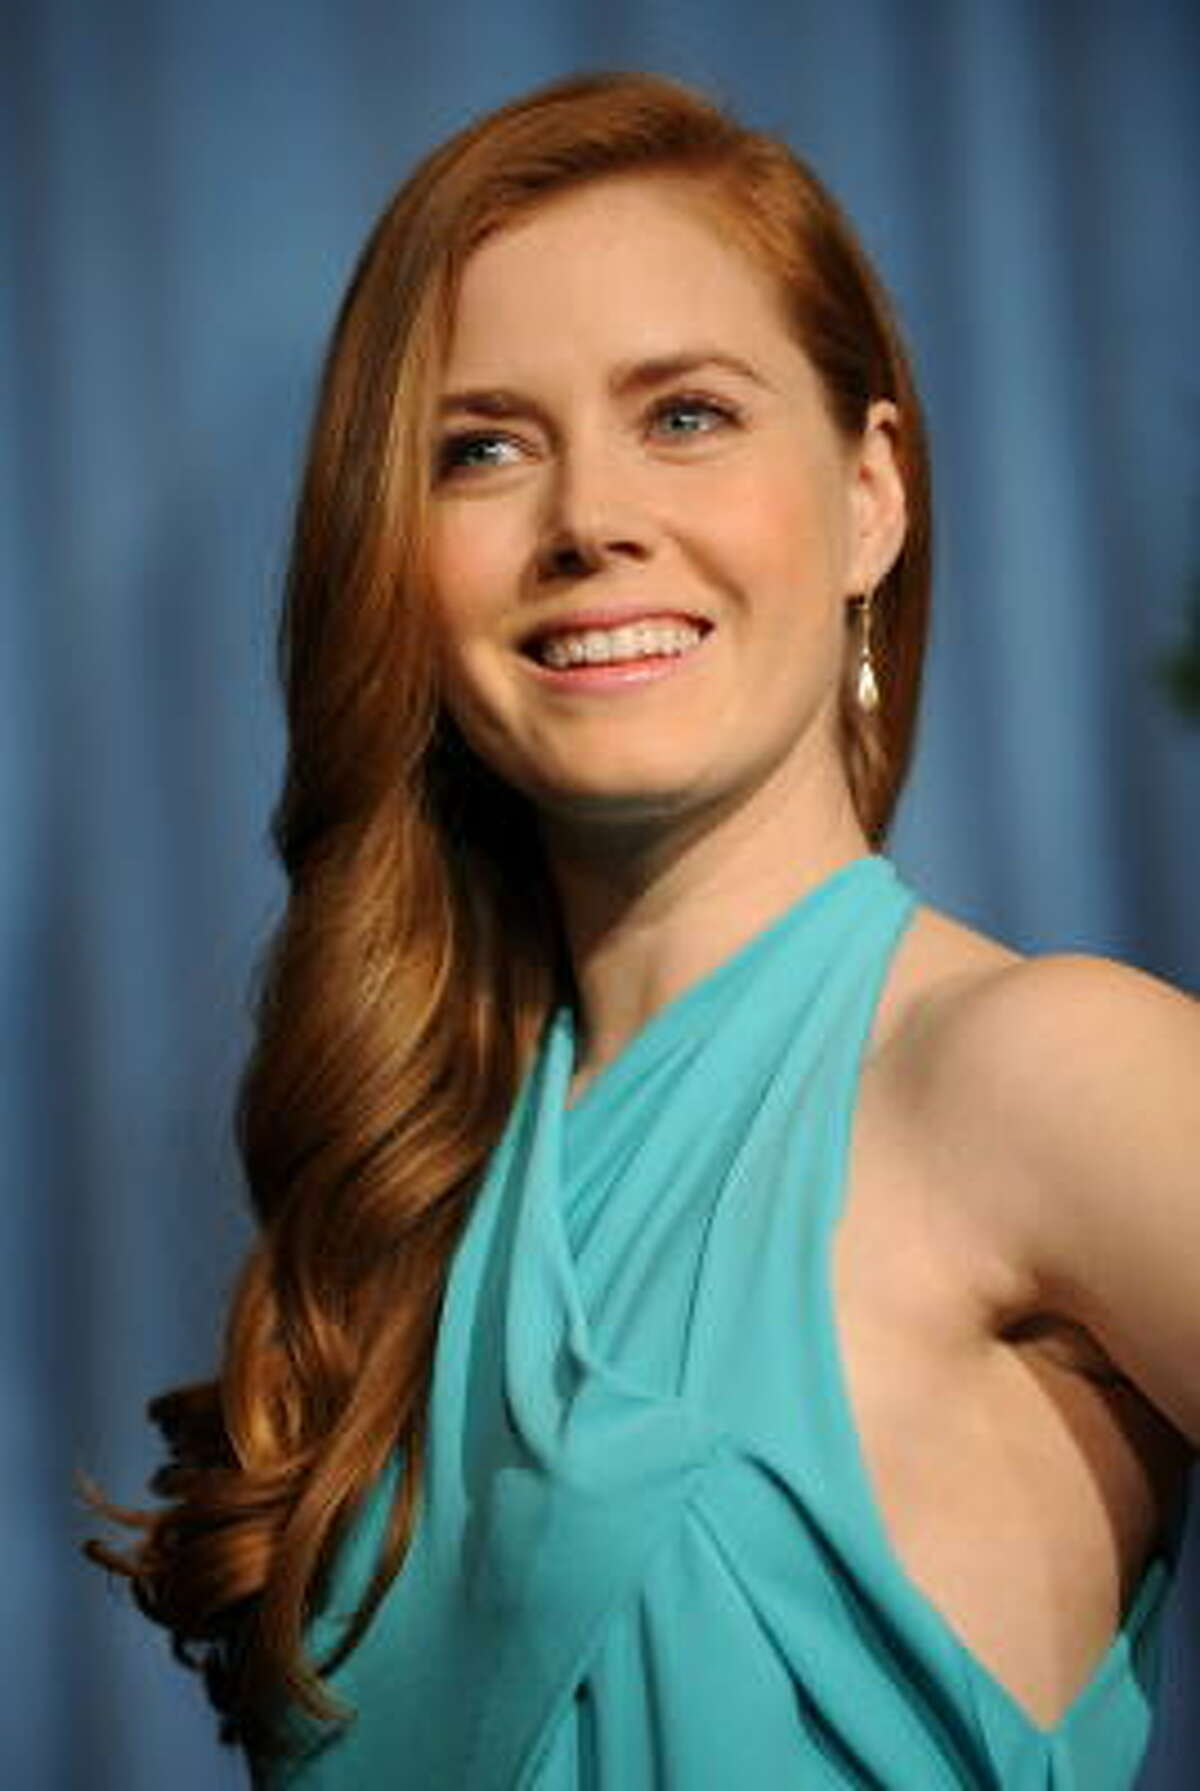 Amy Adams Tigers are generally well-liked and have charismatic personalities. Exhibit A: Amy Adams.